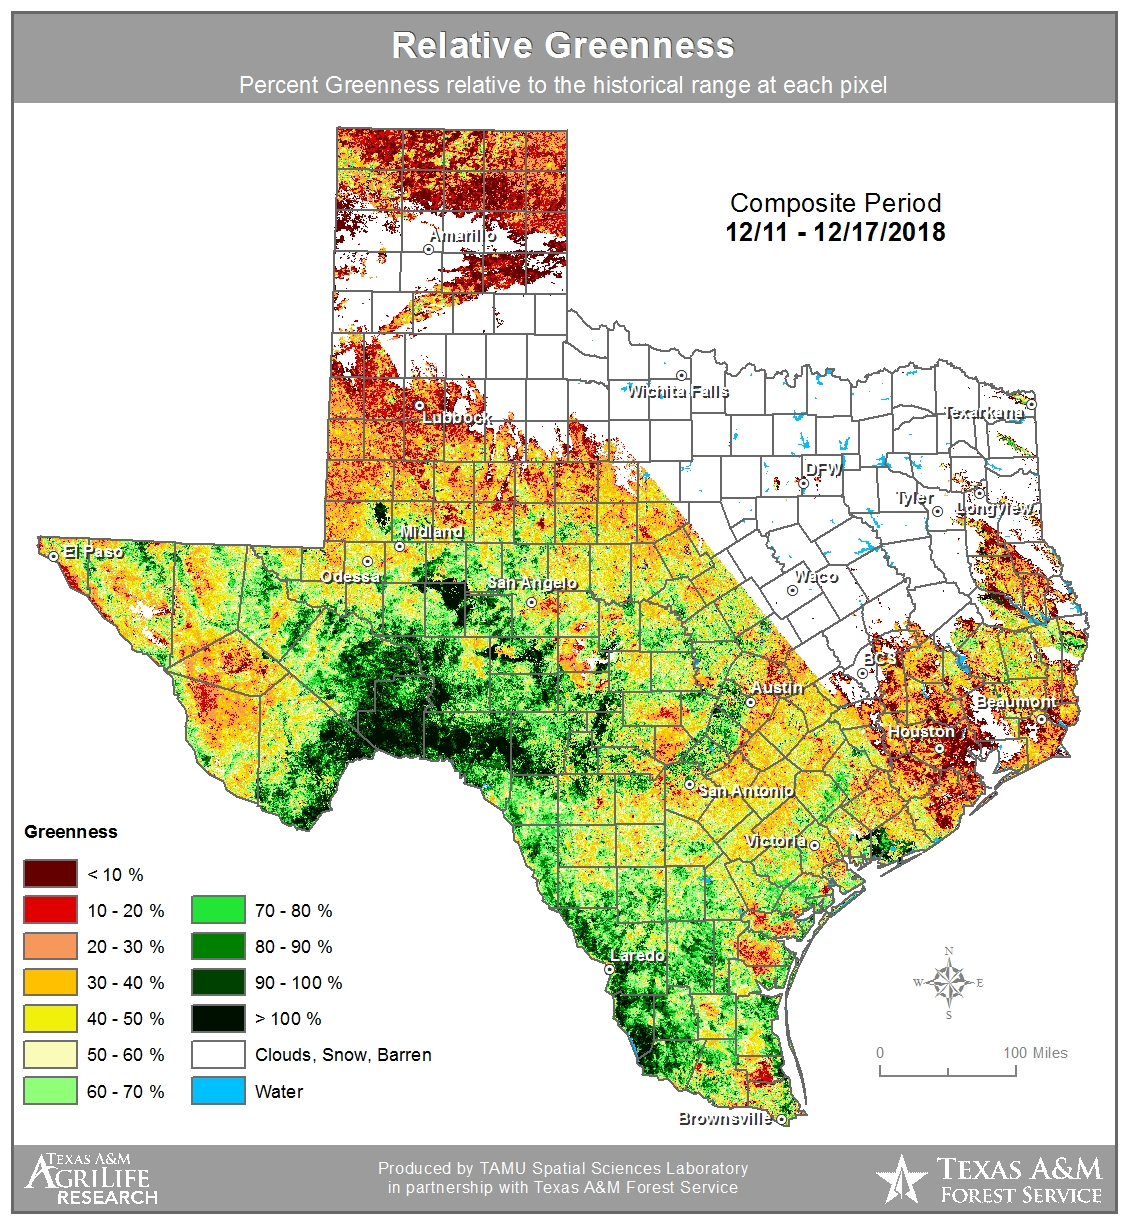 Nws san angelo fire weather departure from average greenness map texas forest service fuel dryness map texas interagency coordination center ticc freerunsca Gallery